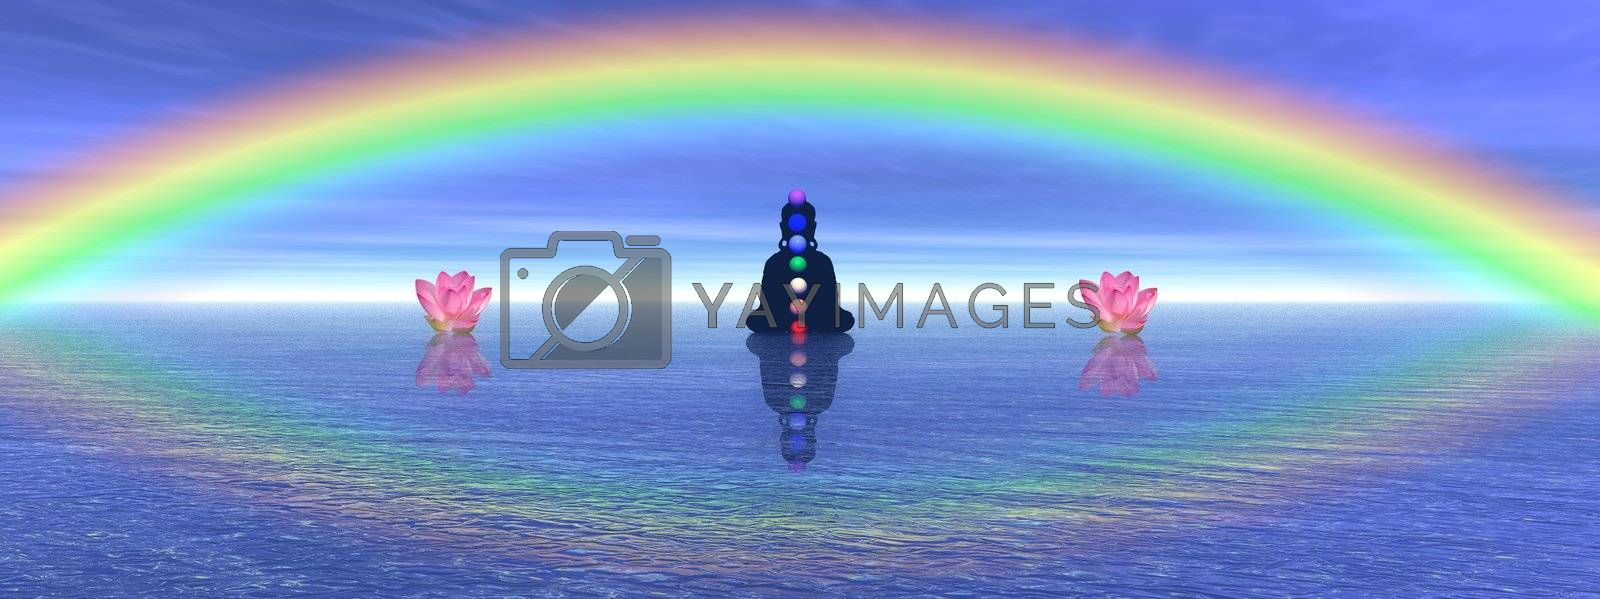 Shadow in meditation with chakras next to two waterlilies, on the ocean and under a big beautiful rainbow